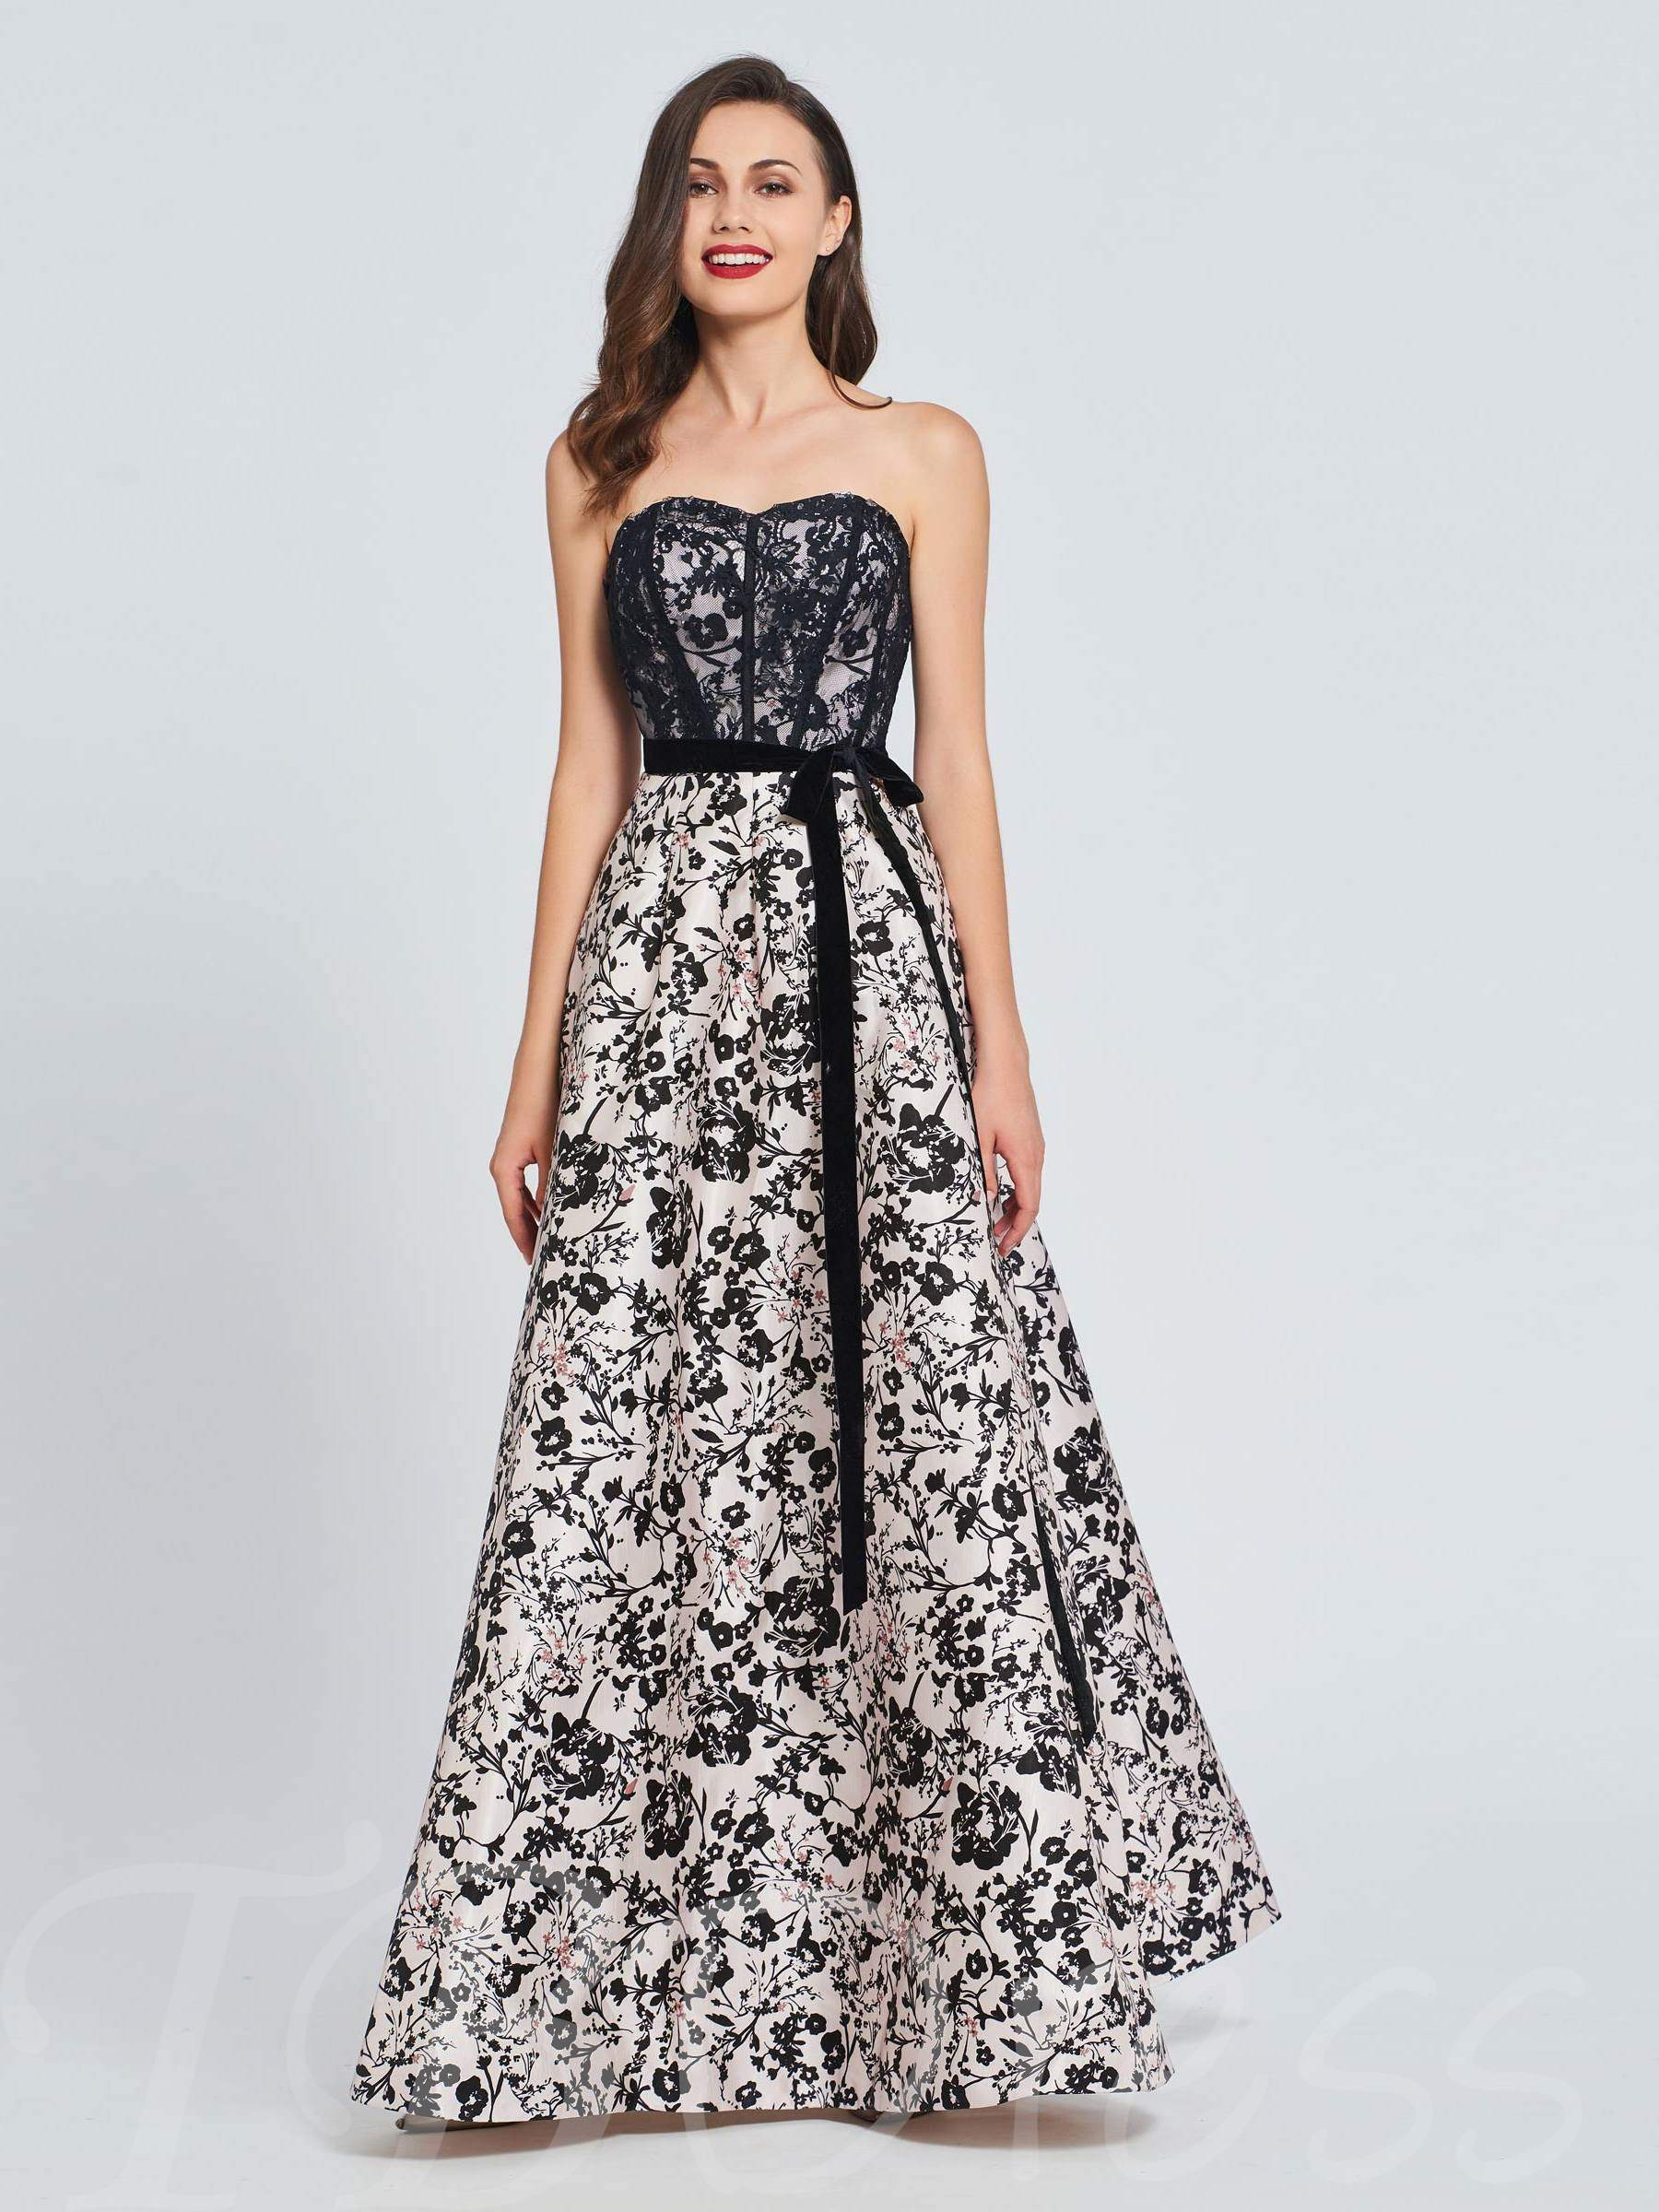 Buy A-Line Sweetheart Bowknot Lace Printed Prom Dress, Spring,Summer,Fall,Winter, 13393554 for $144.36 in TBDress store